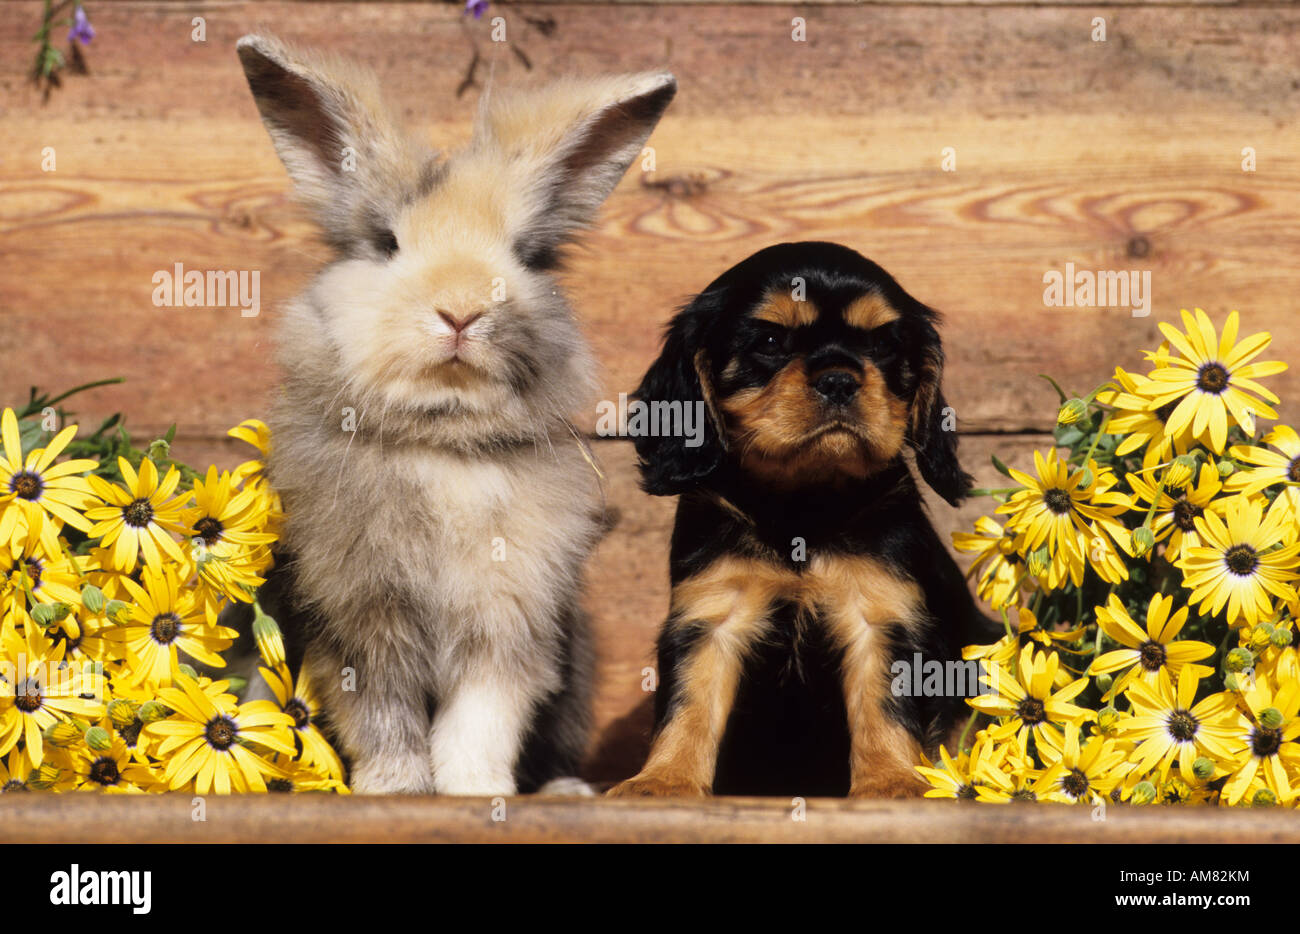 Cavalier King Charles Spaniel, puppy sitting next to Domestic Rabbit - Stock Image